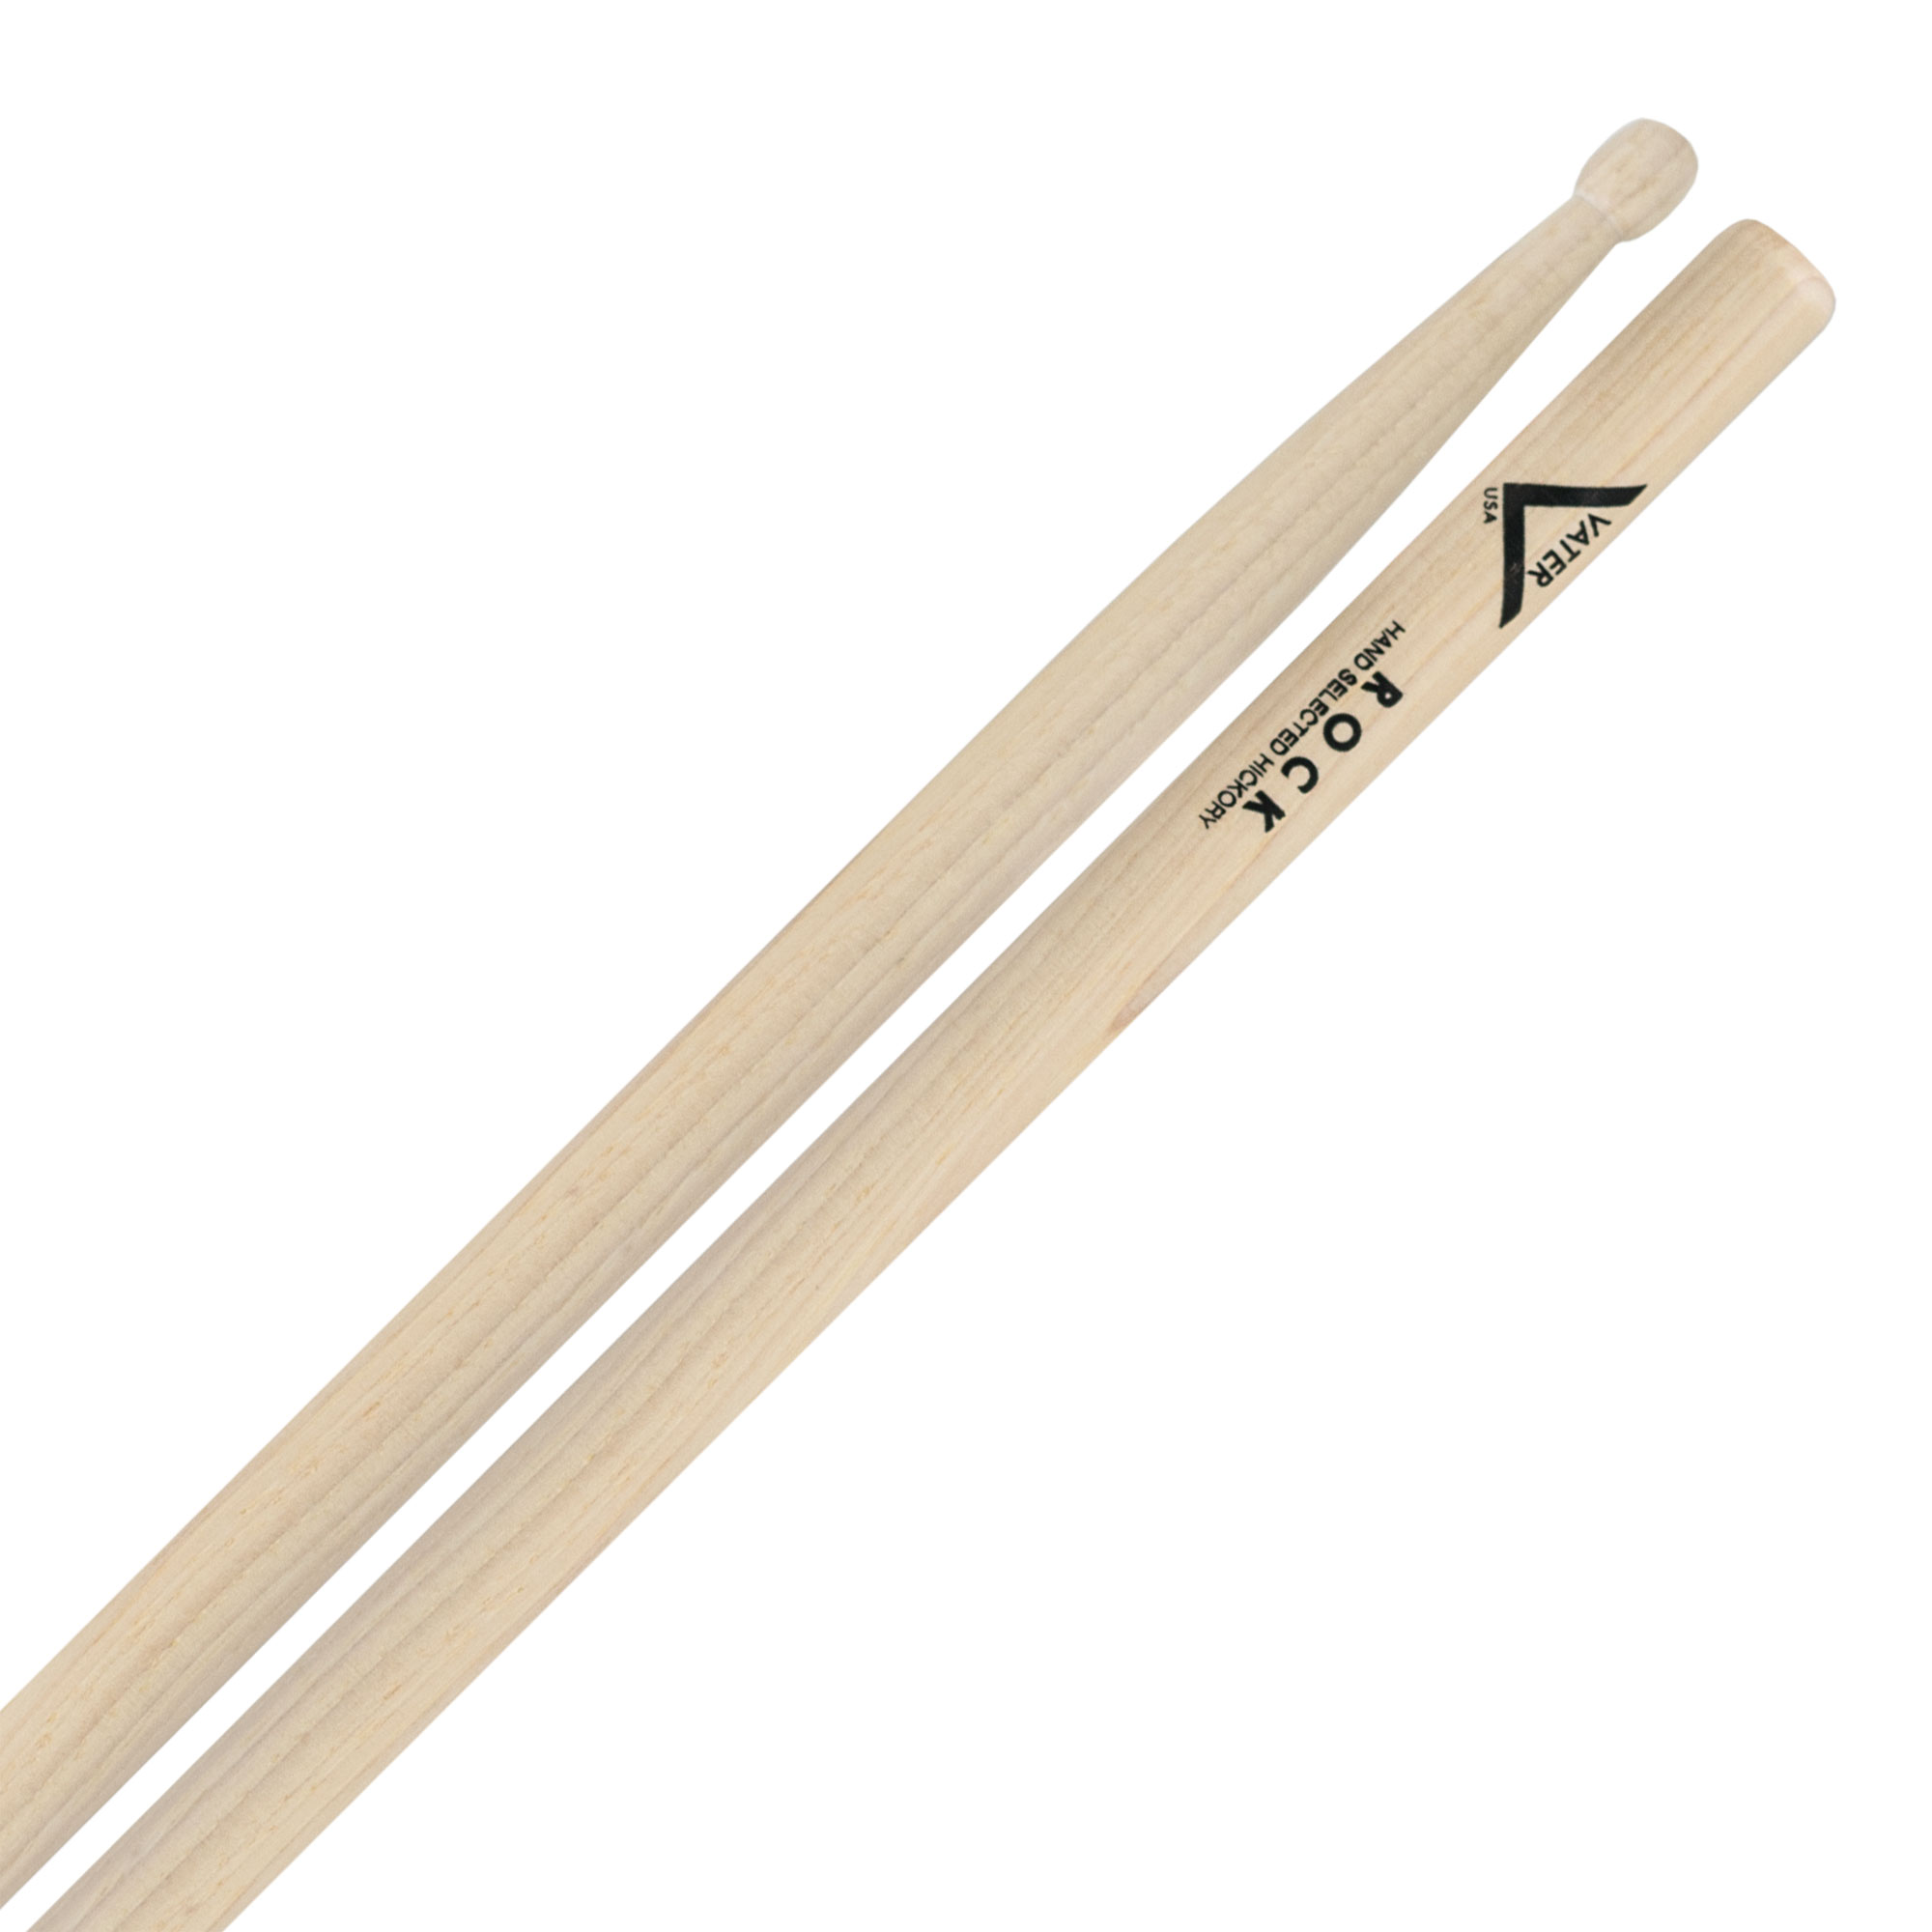 Vater American Hickory Rock Wood Tip Drumsticks